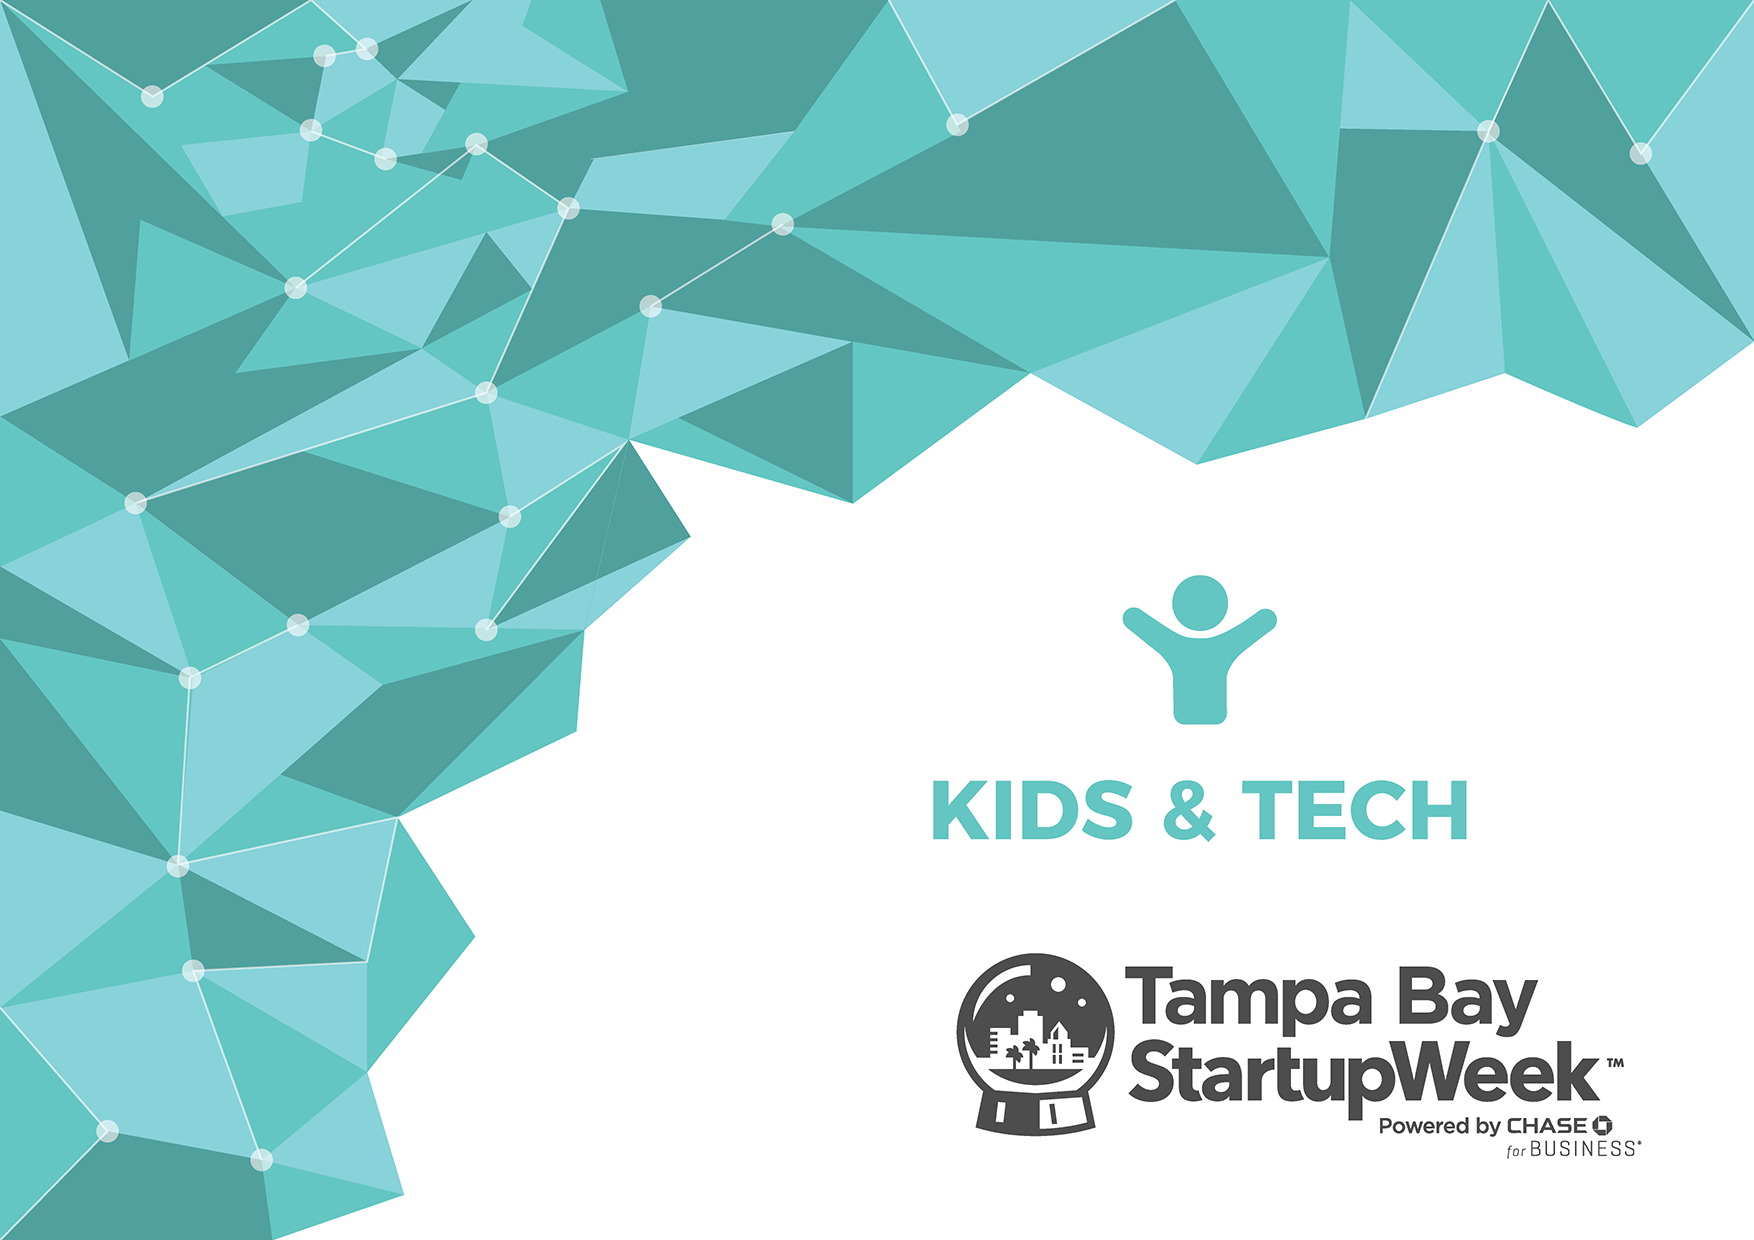 TRACK HIGHLIGHT: Kids & Tech powered by Florida Blue